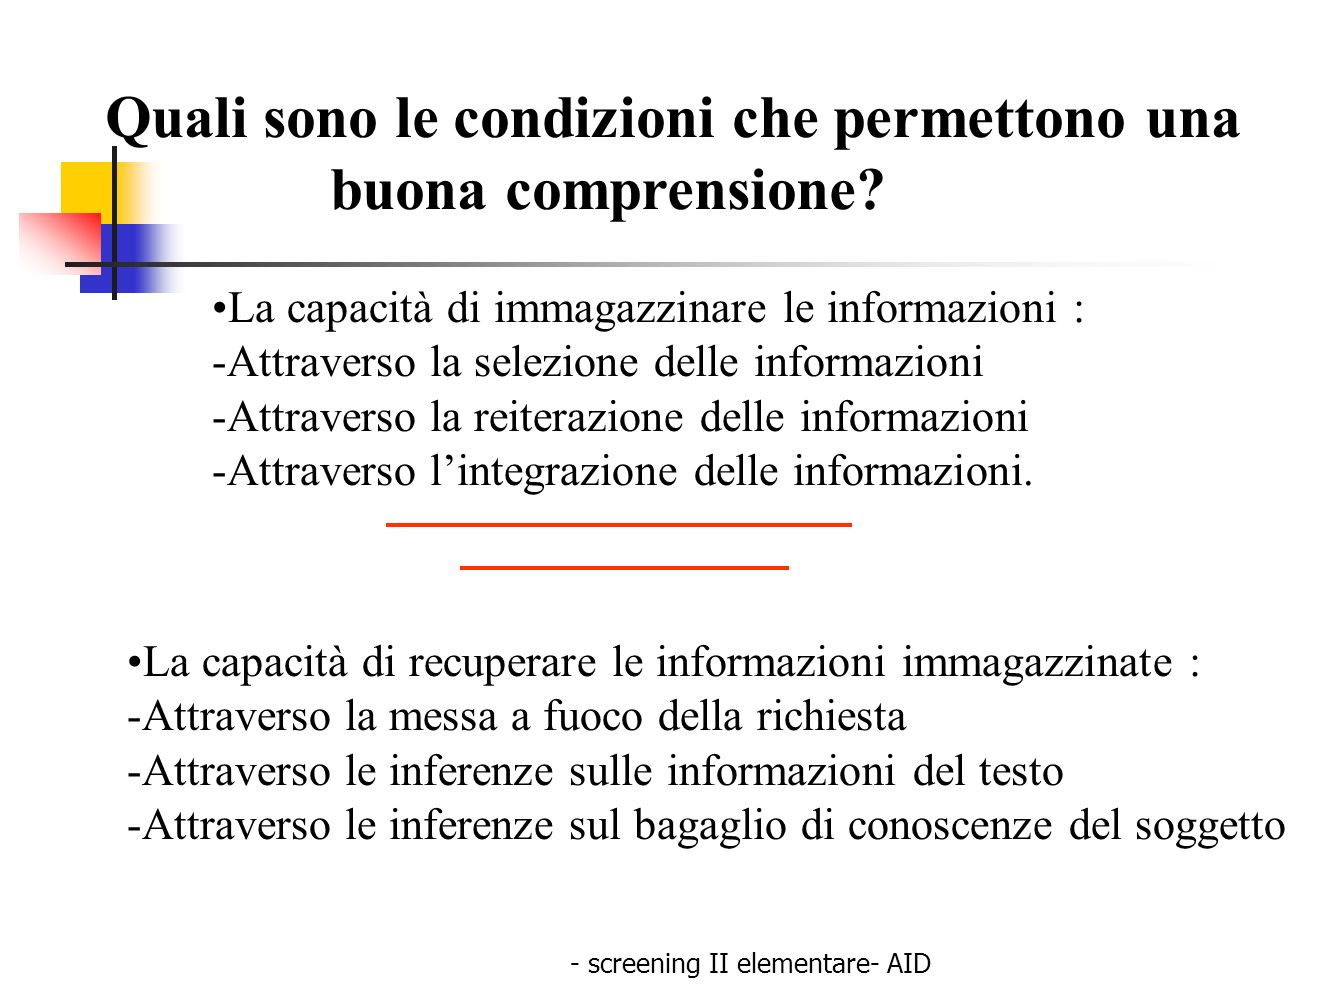 - screening II elementare- AID